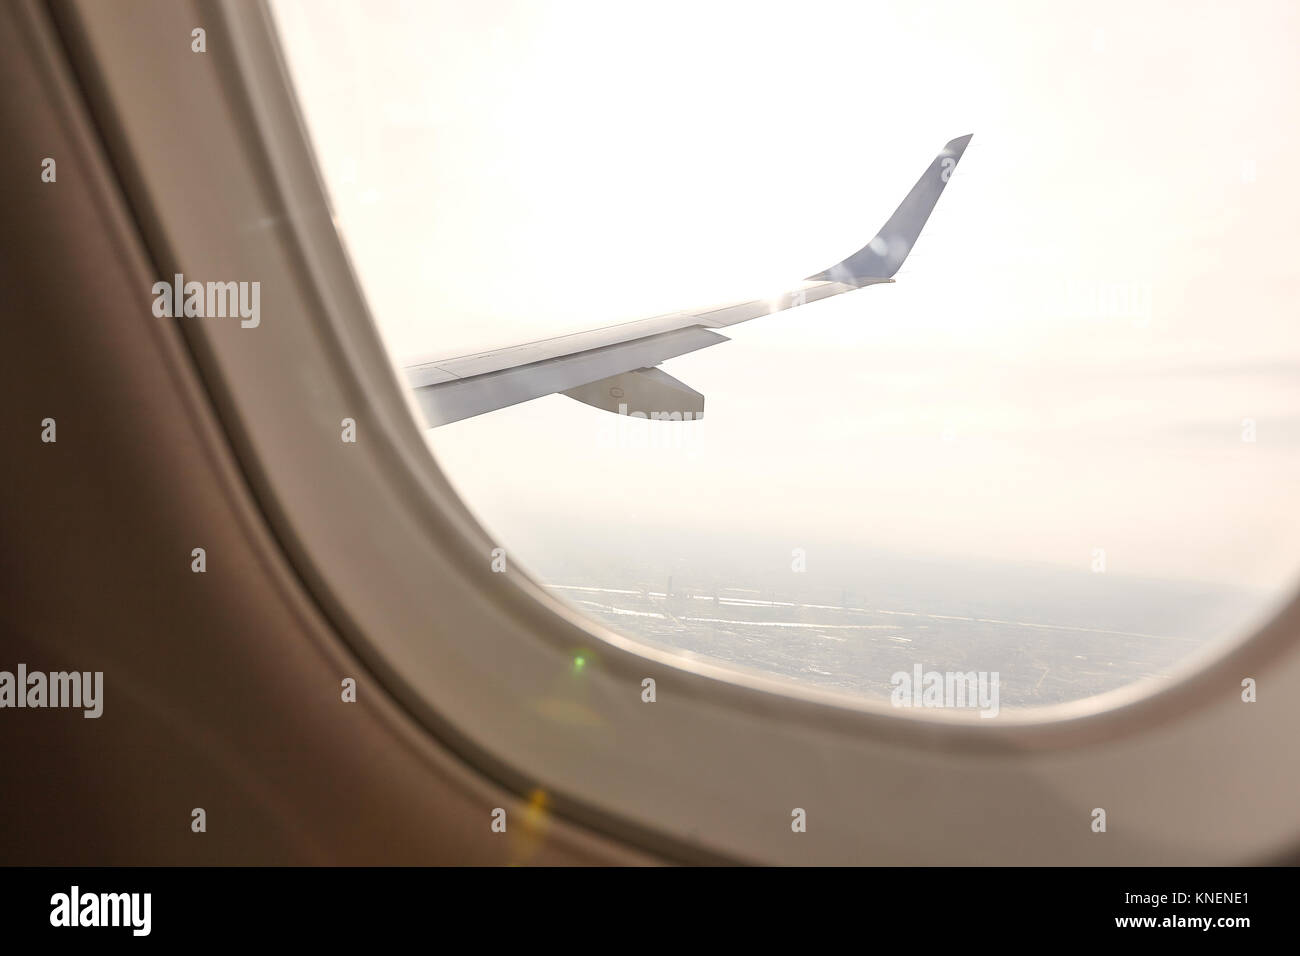 View from aeroplane window of another plane Stock Photo